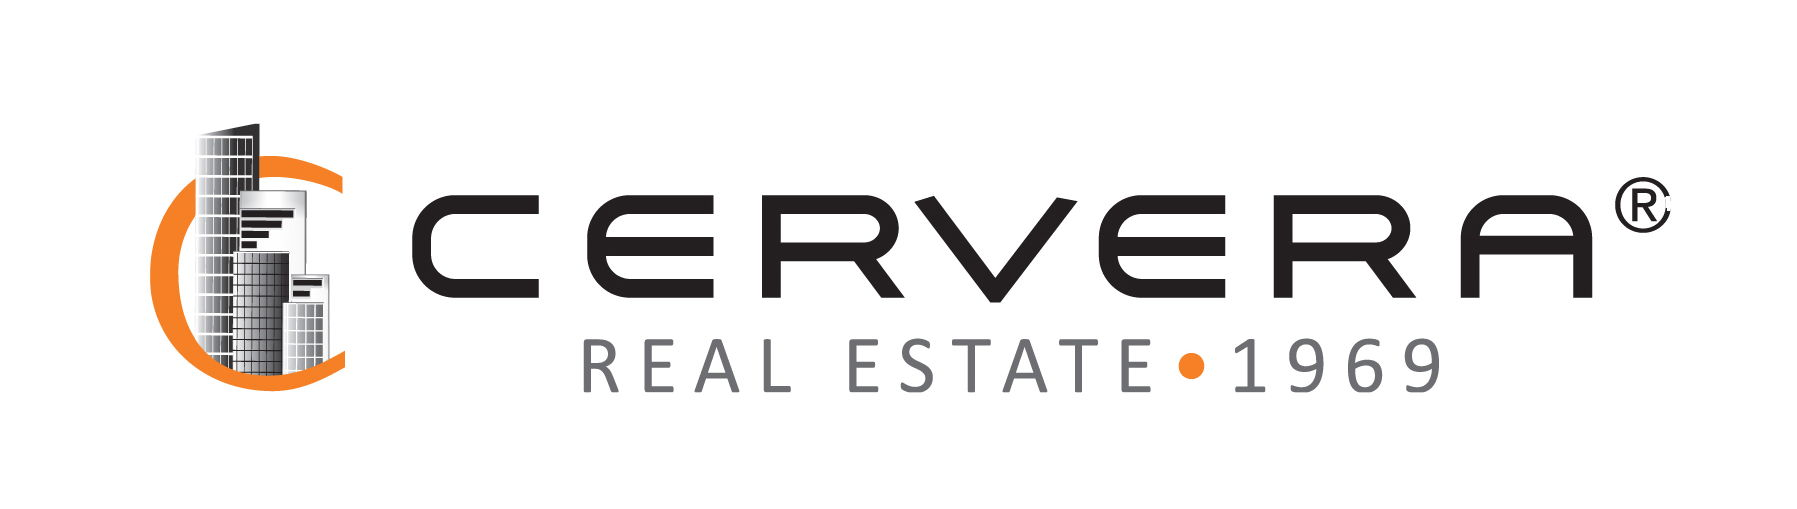 Cervera Real Estate Inc.